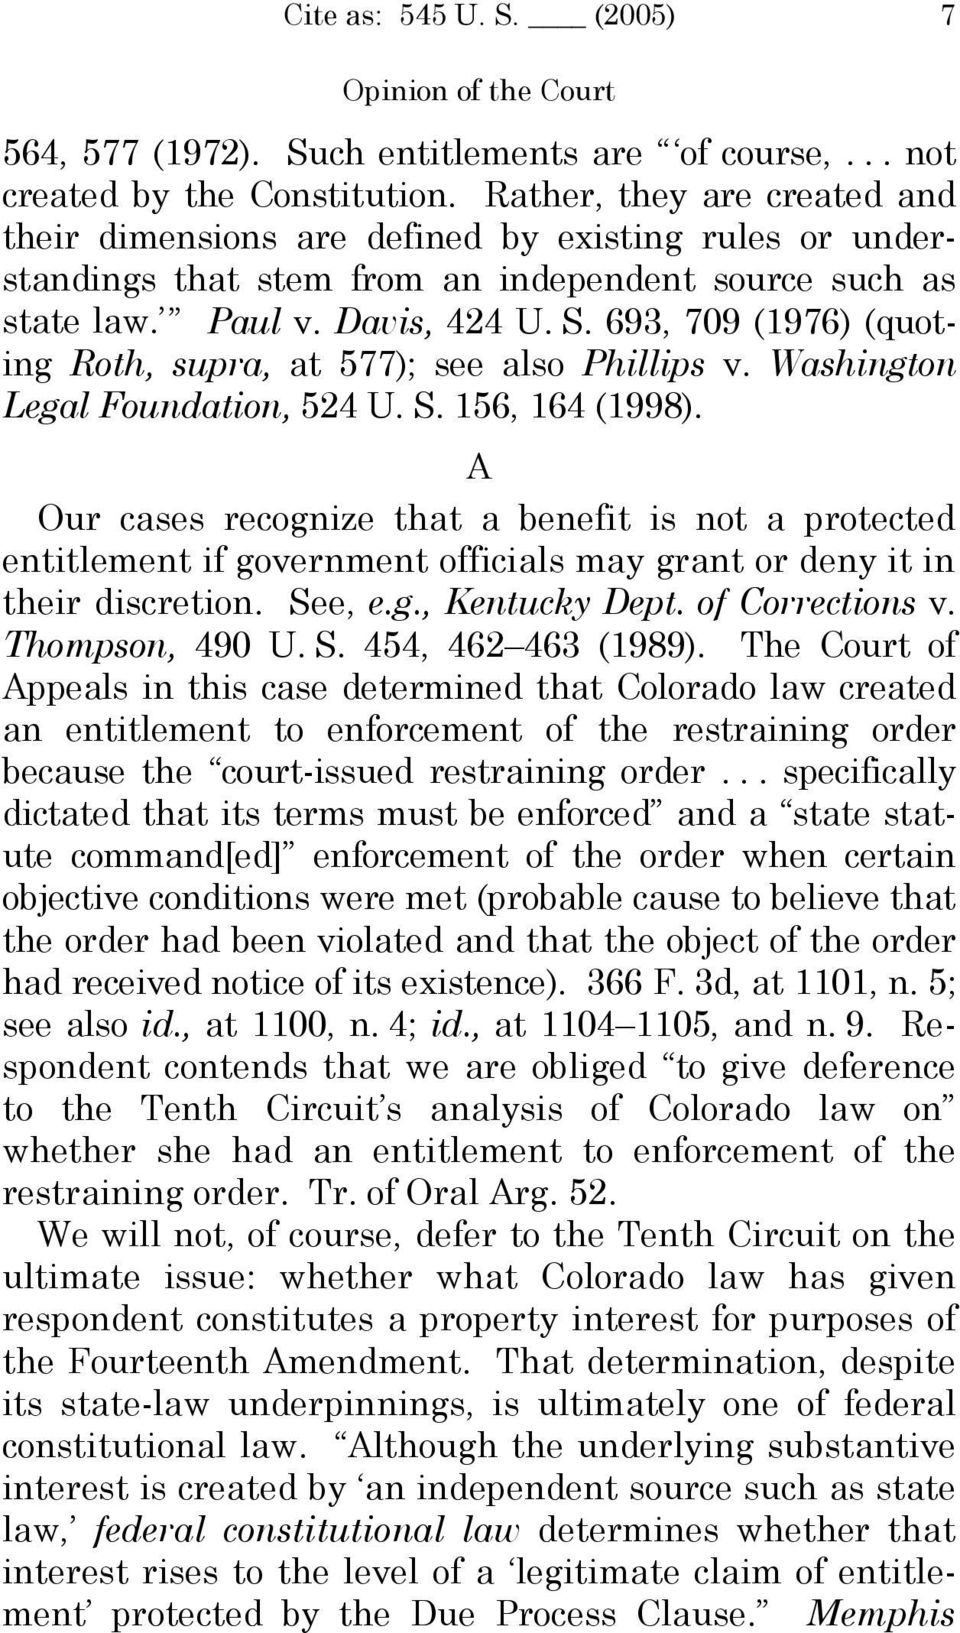 693, 709 (1976) (quoting Roth, supra, at 577); see also Phillips v. Washington Legal Foundation, 524 U. S. 156, 164 (1998).